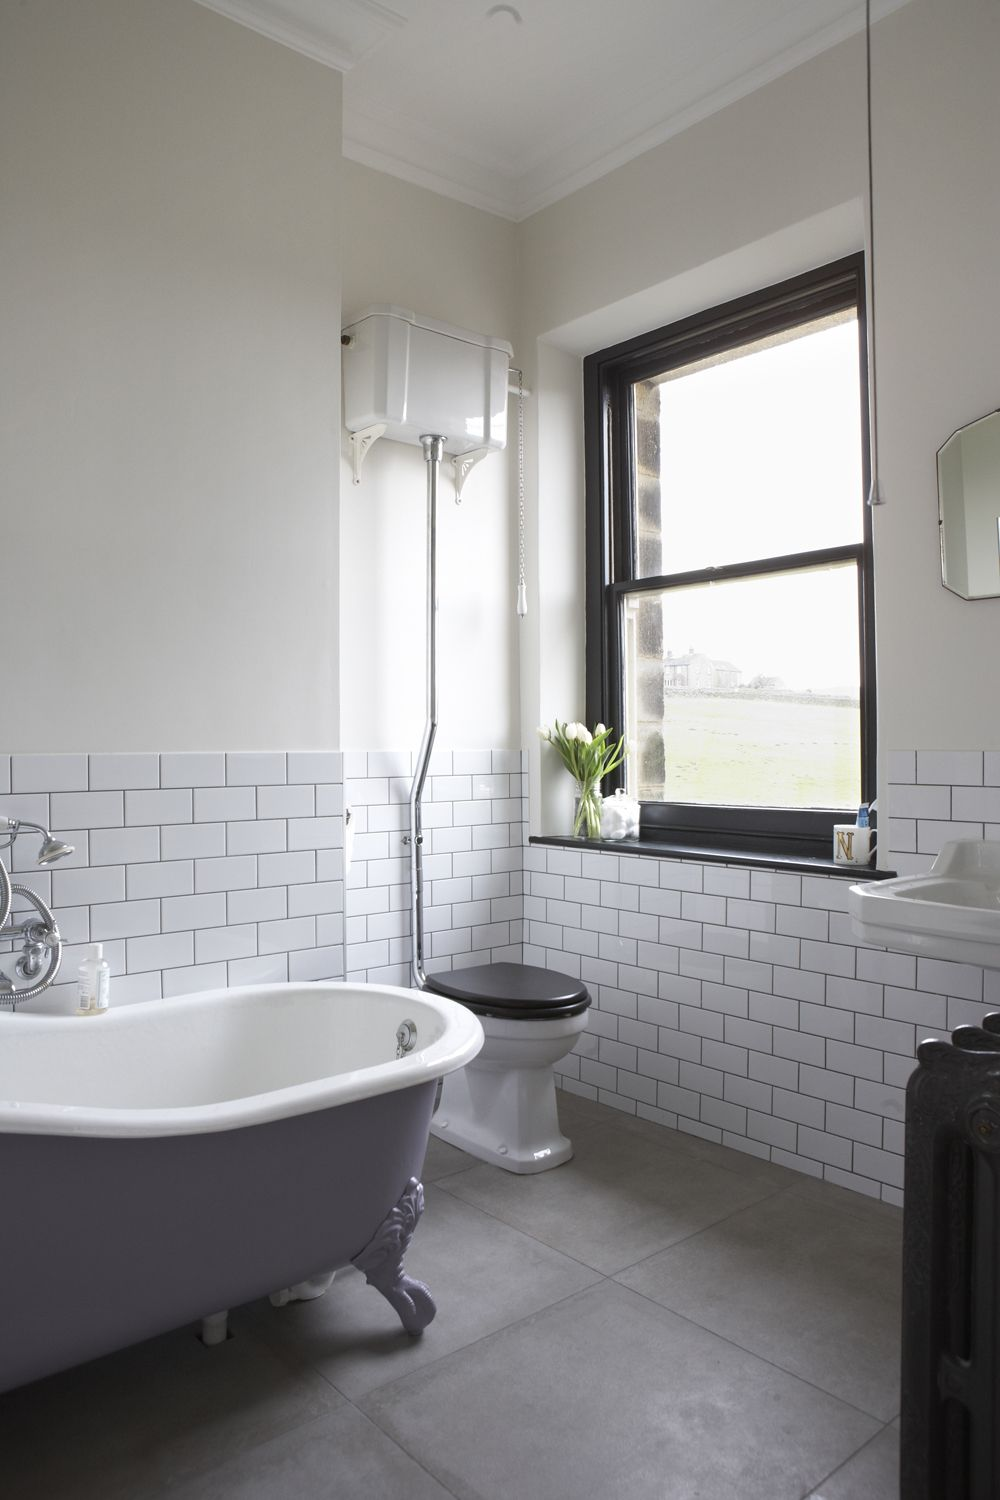 Black and white art deco bathroom - House Bathroom Metro Tiles Black Painted Window Art Deco Mirror Roll Top